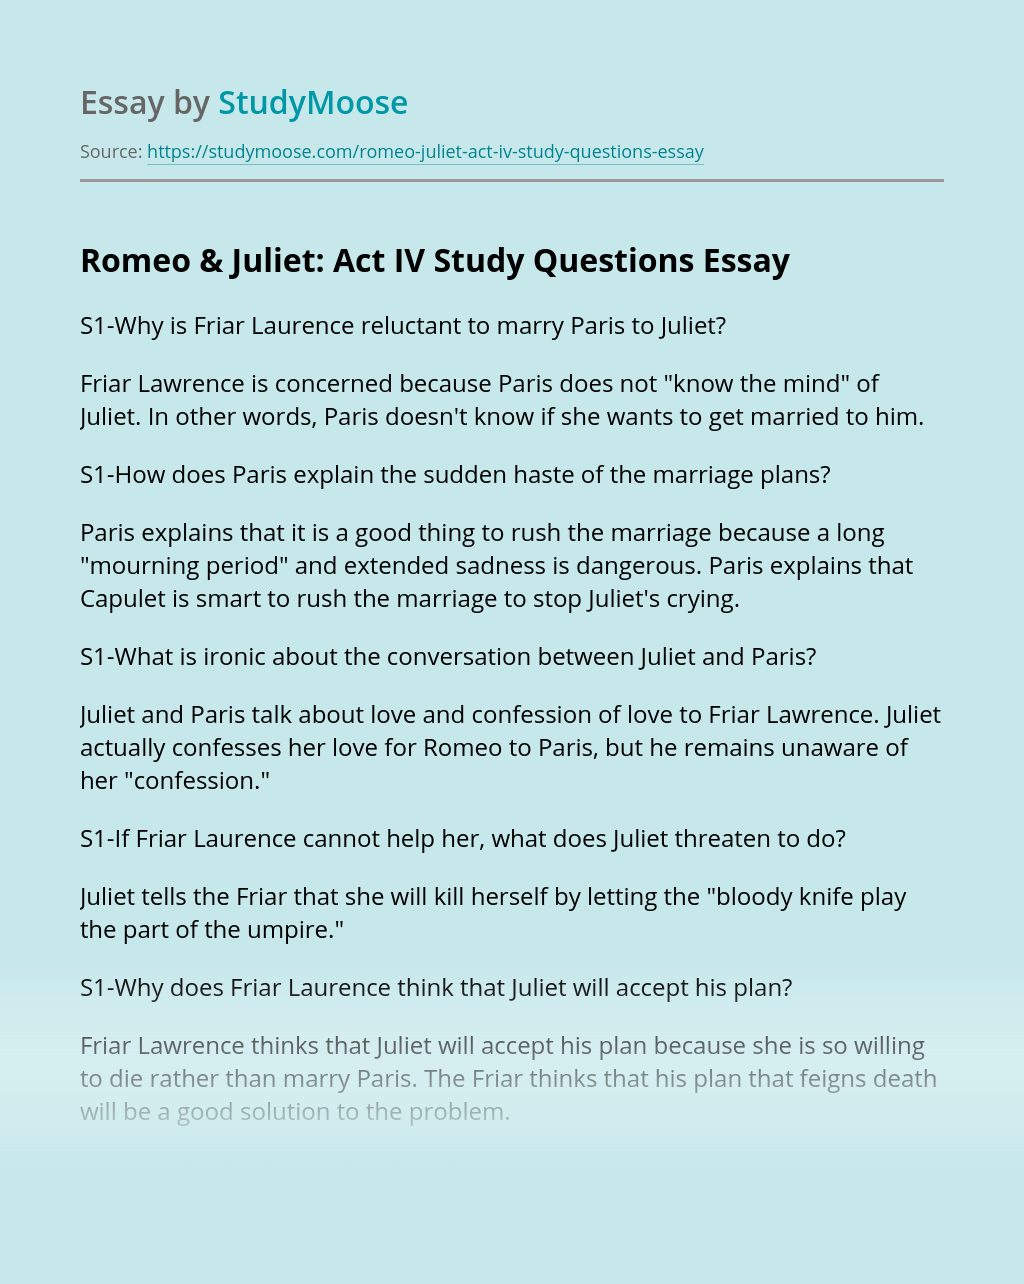 Romeo & Juliet: Act IV Study Questions